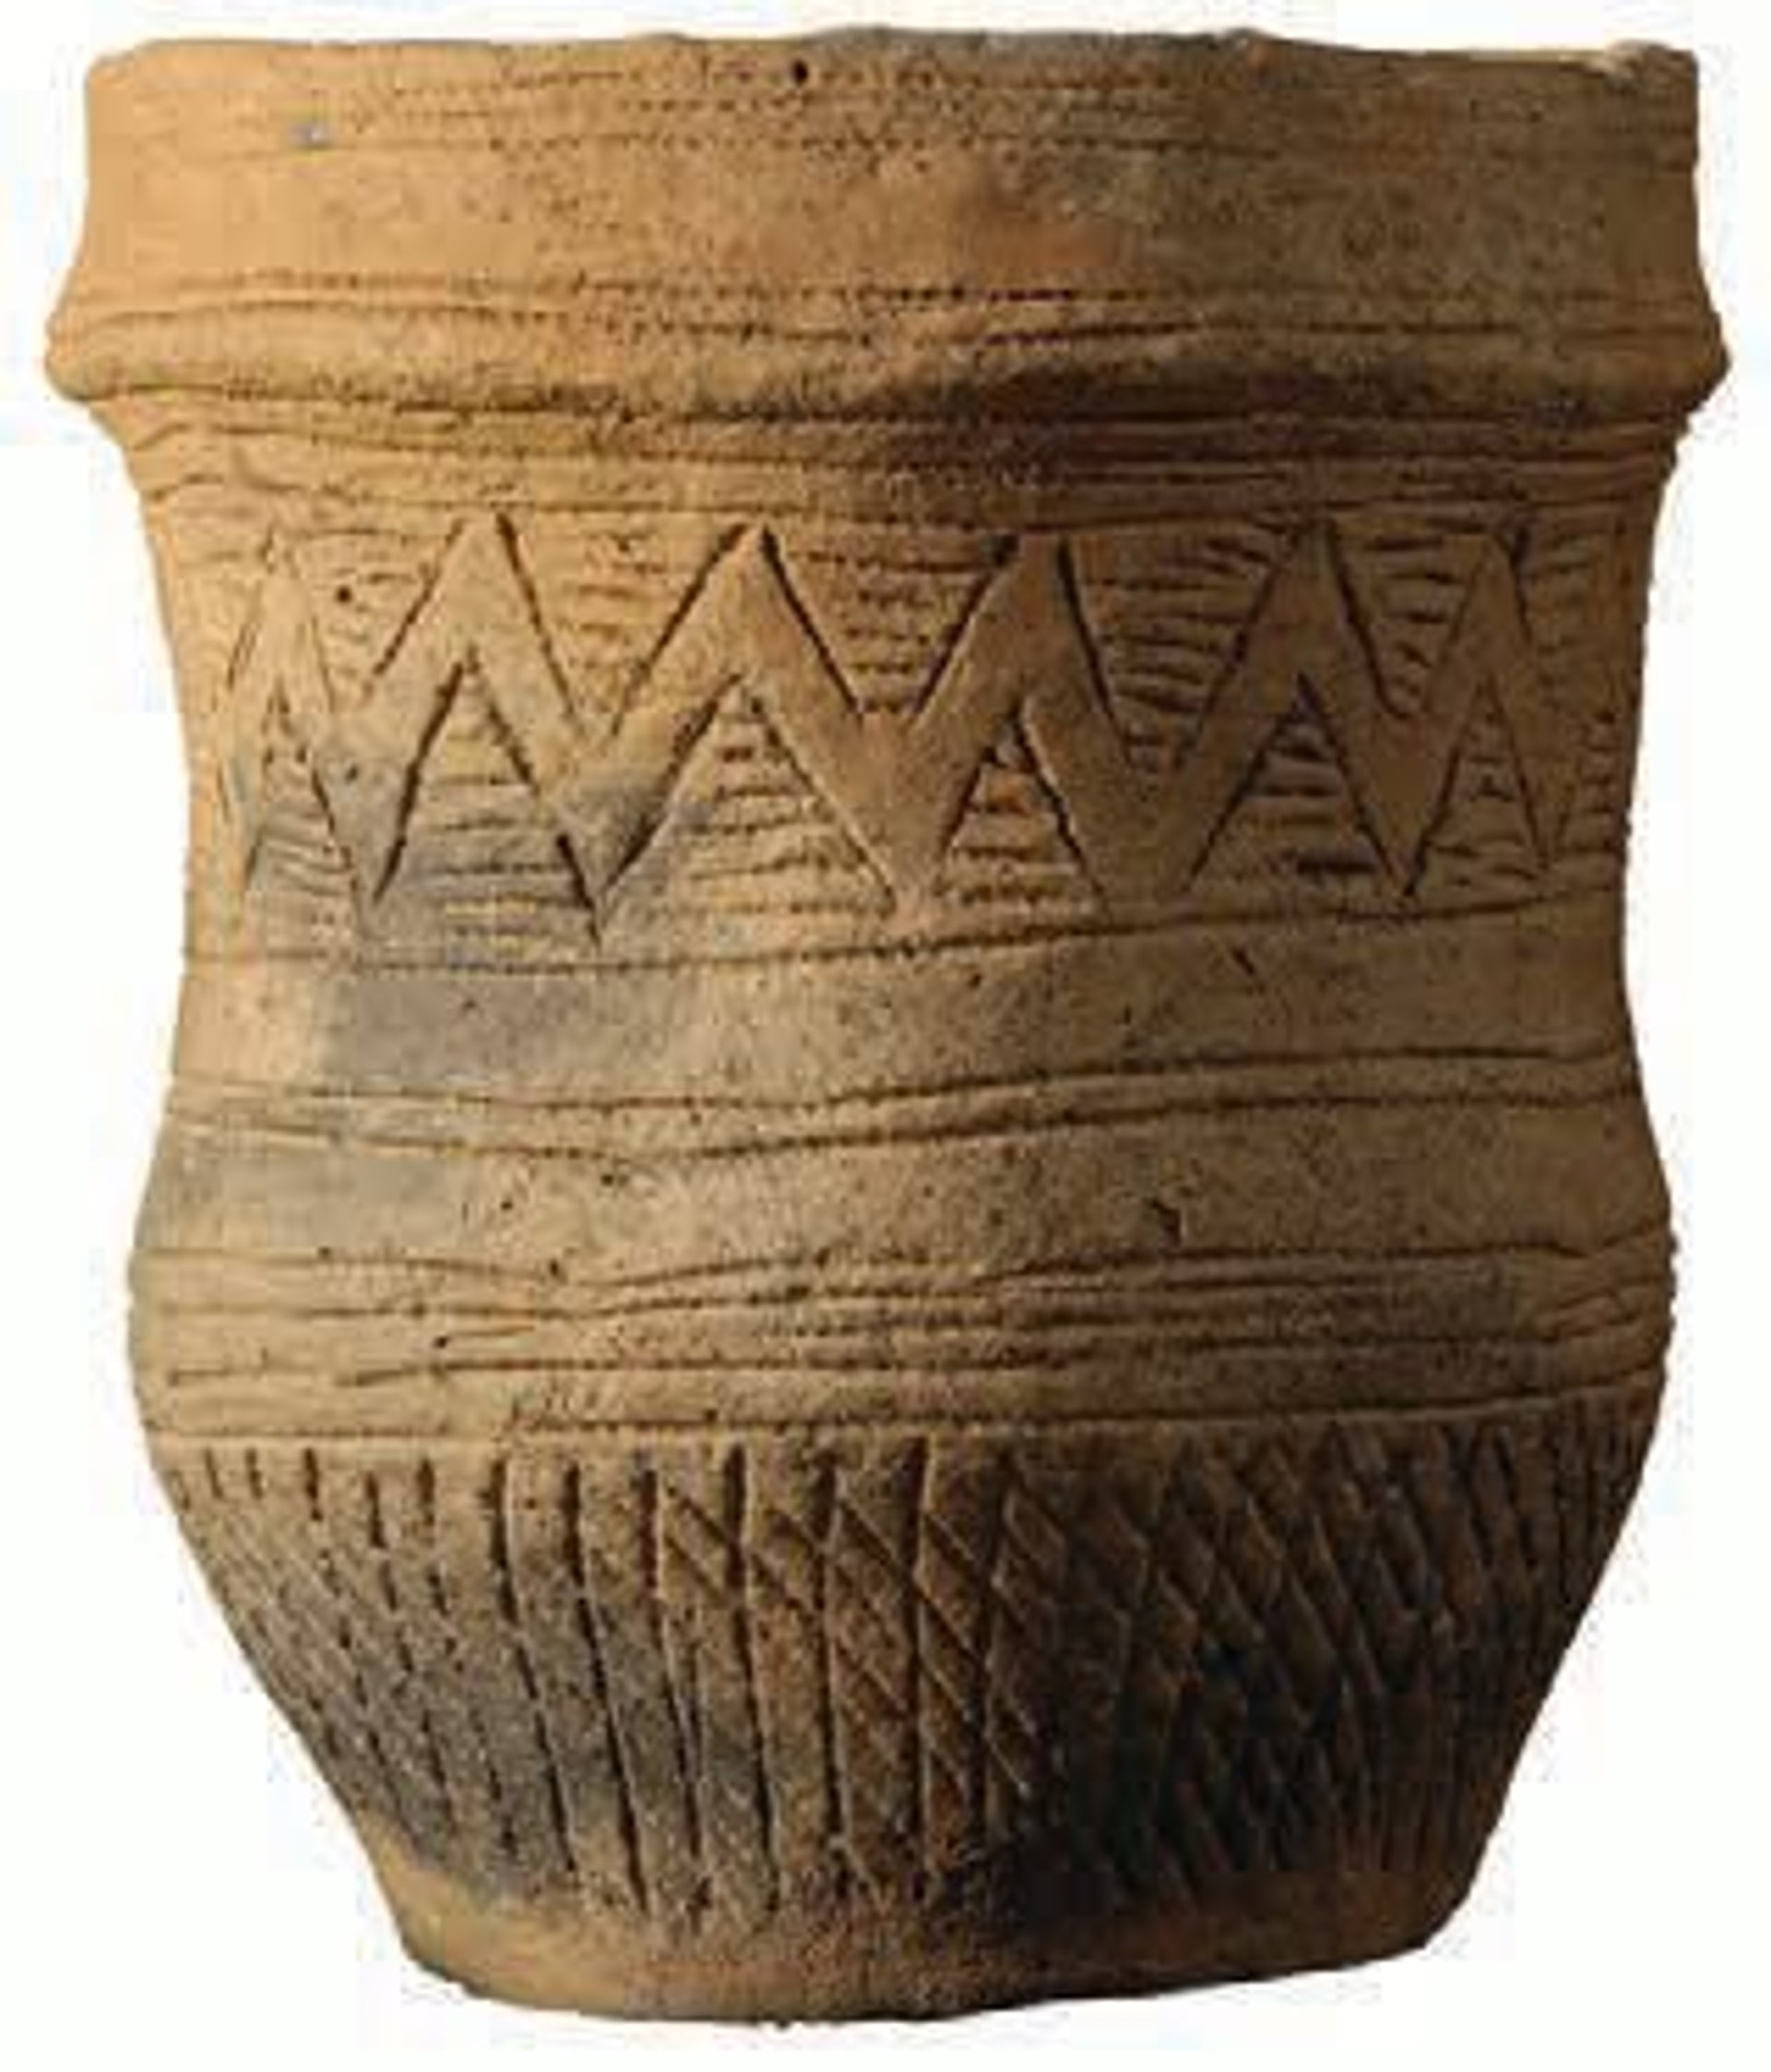 One of the beaker vessels found at Trumpington Meadows